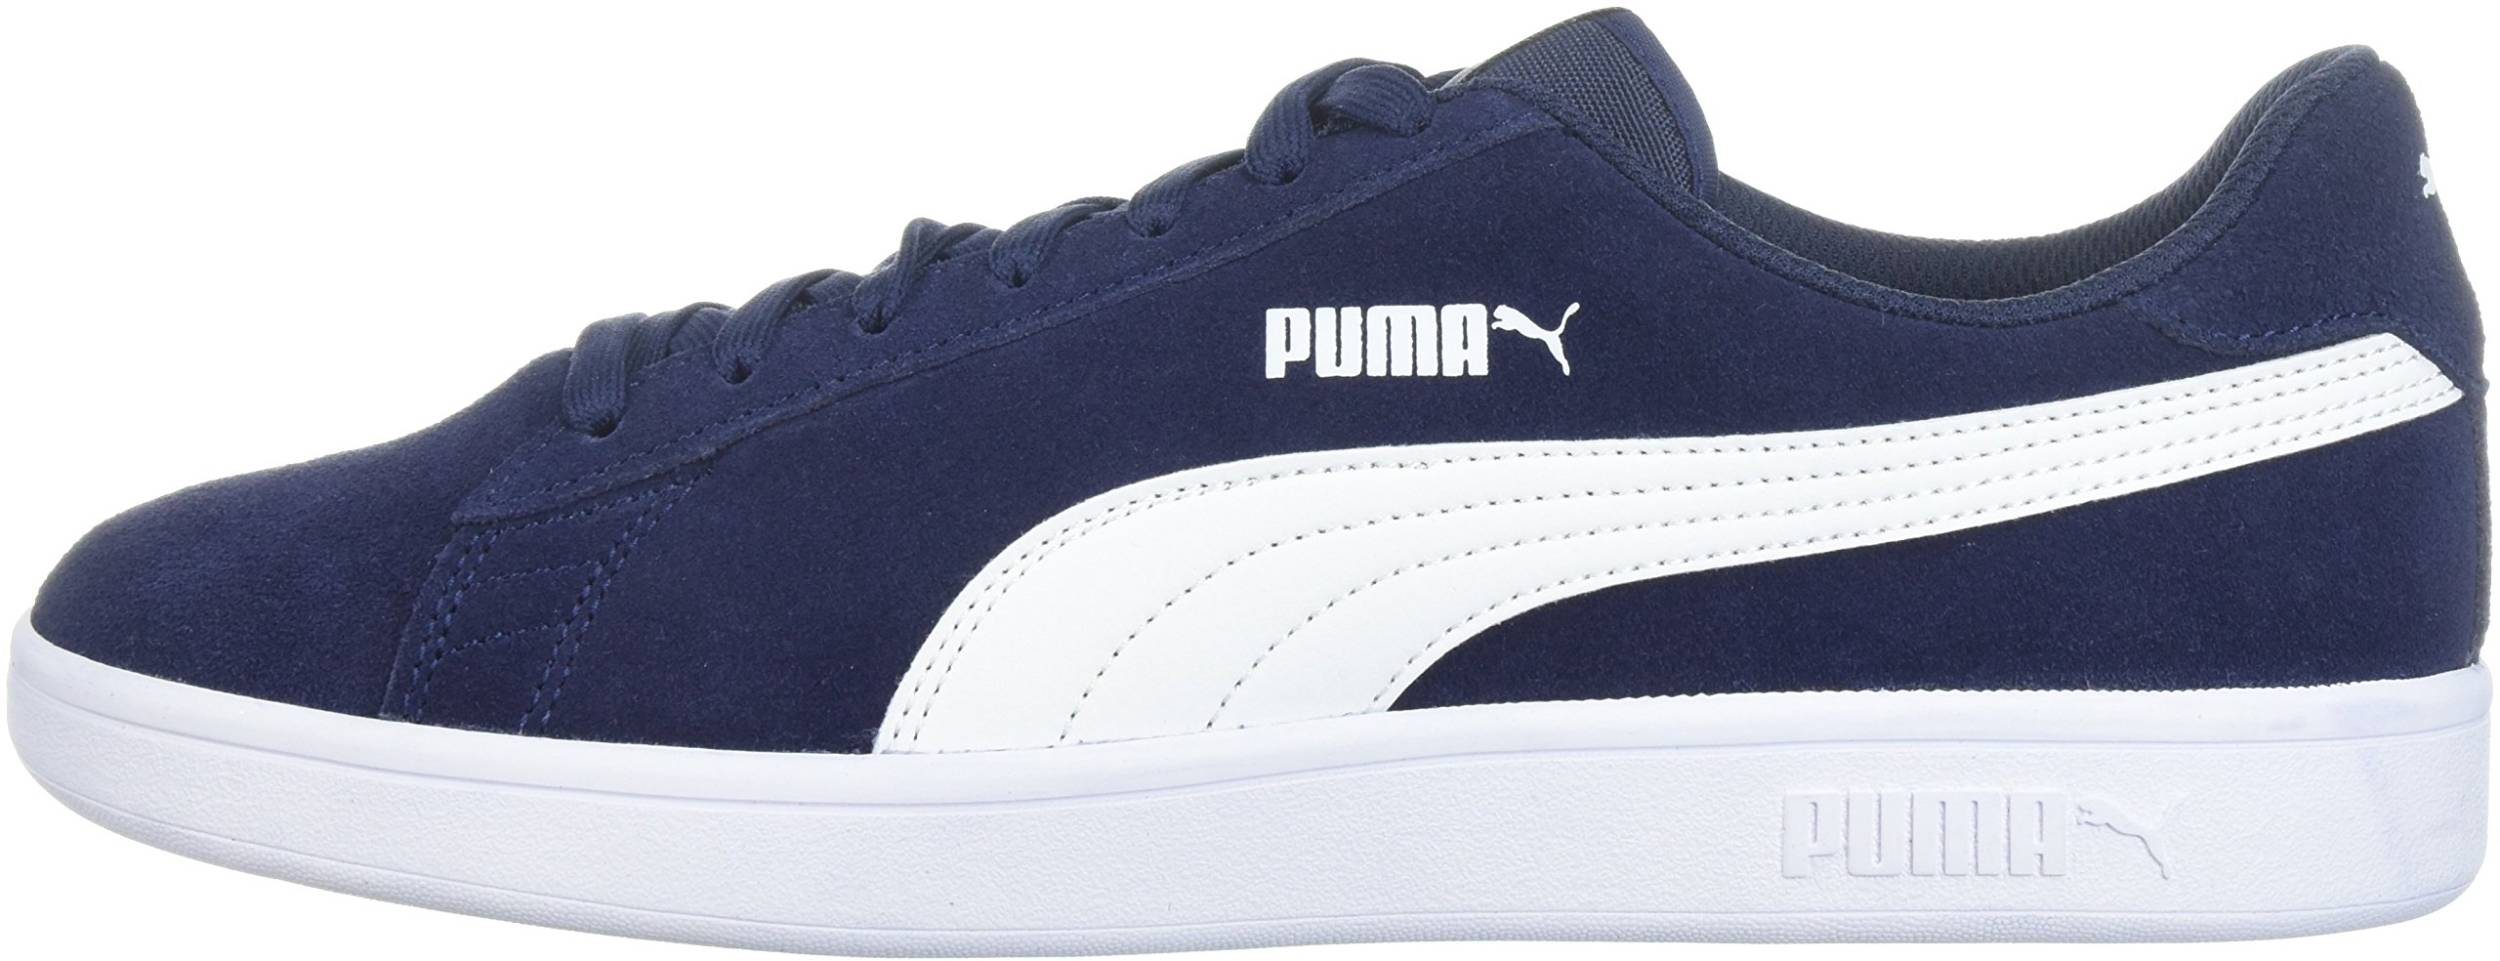 Puma Smash v2 sneakers in 10 colors (only $27) | RunRepeat